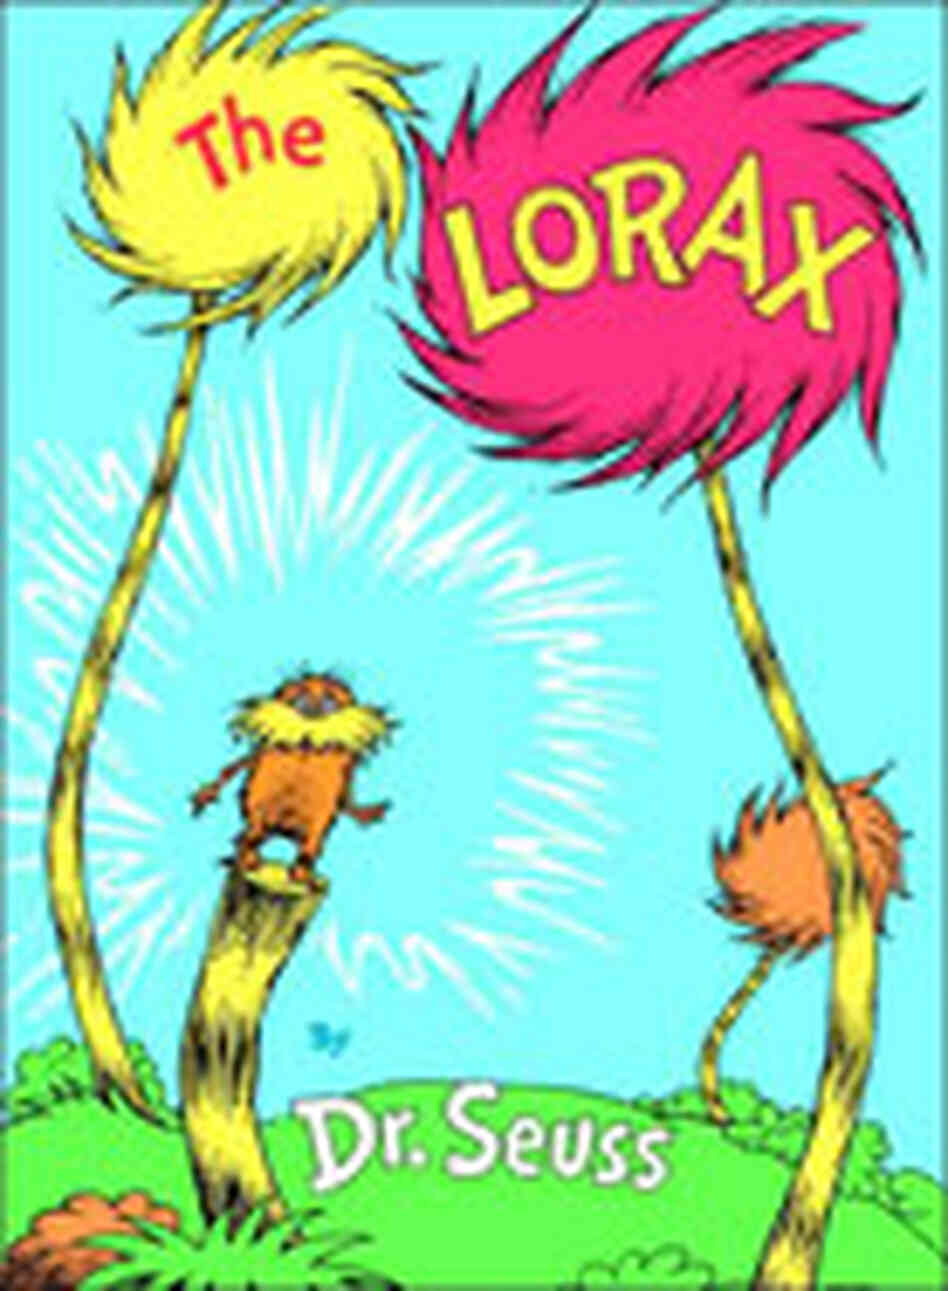 an analysis of the cautionary tale the lorax by dr seuss Lorax lesson plans & worksheets reviewed by from dr seuss's the lorax worksheets to the movie the lorax and discuss how students story the lorax and make.